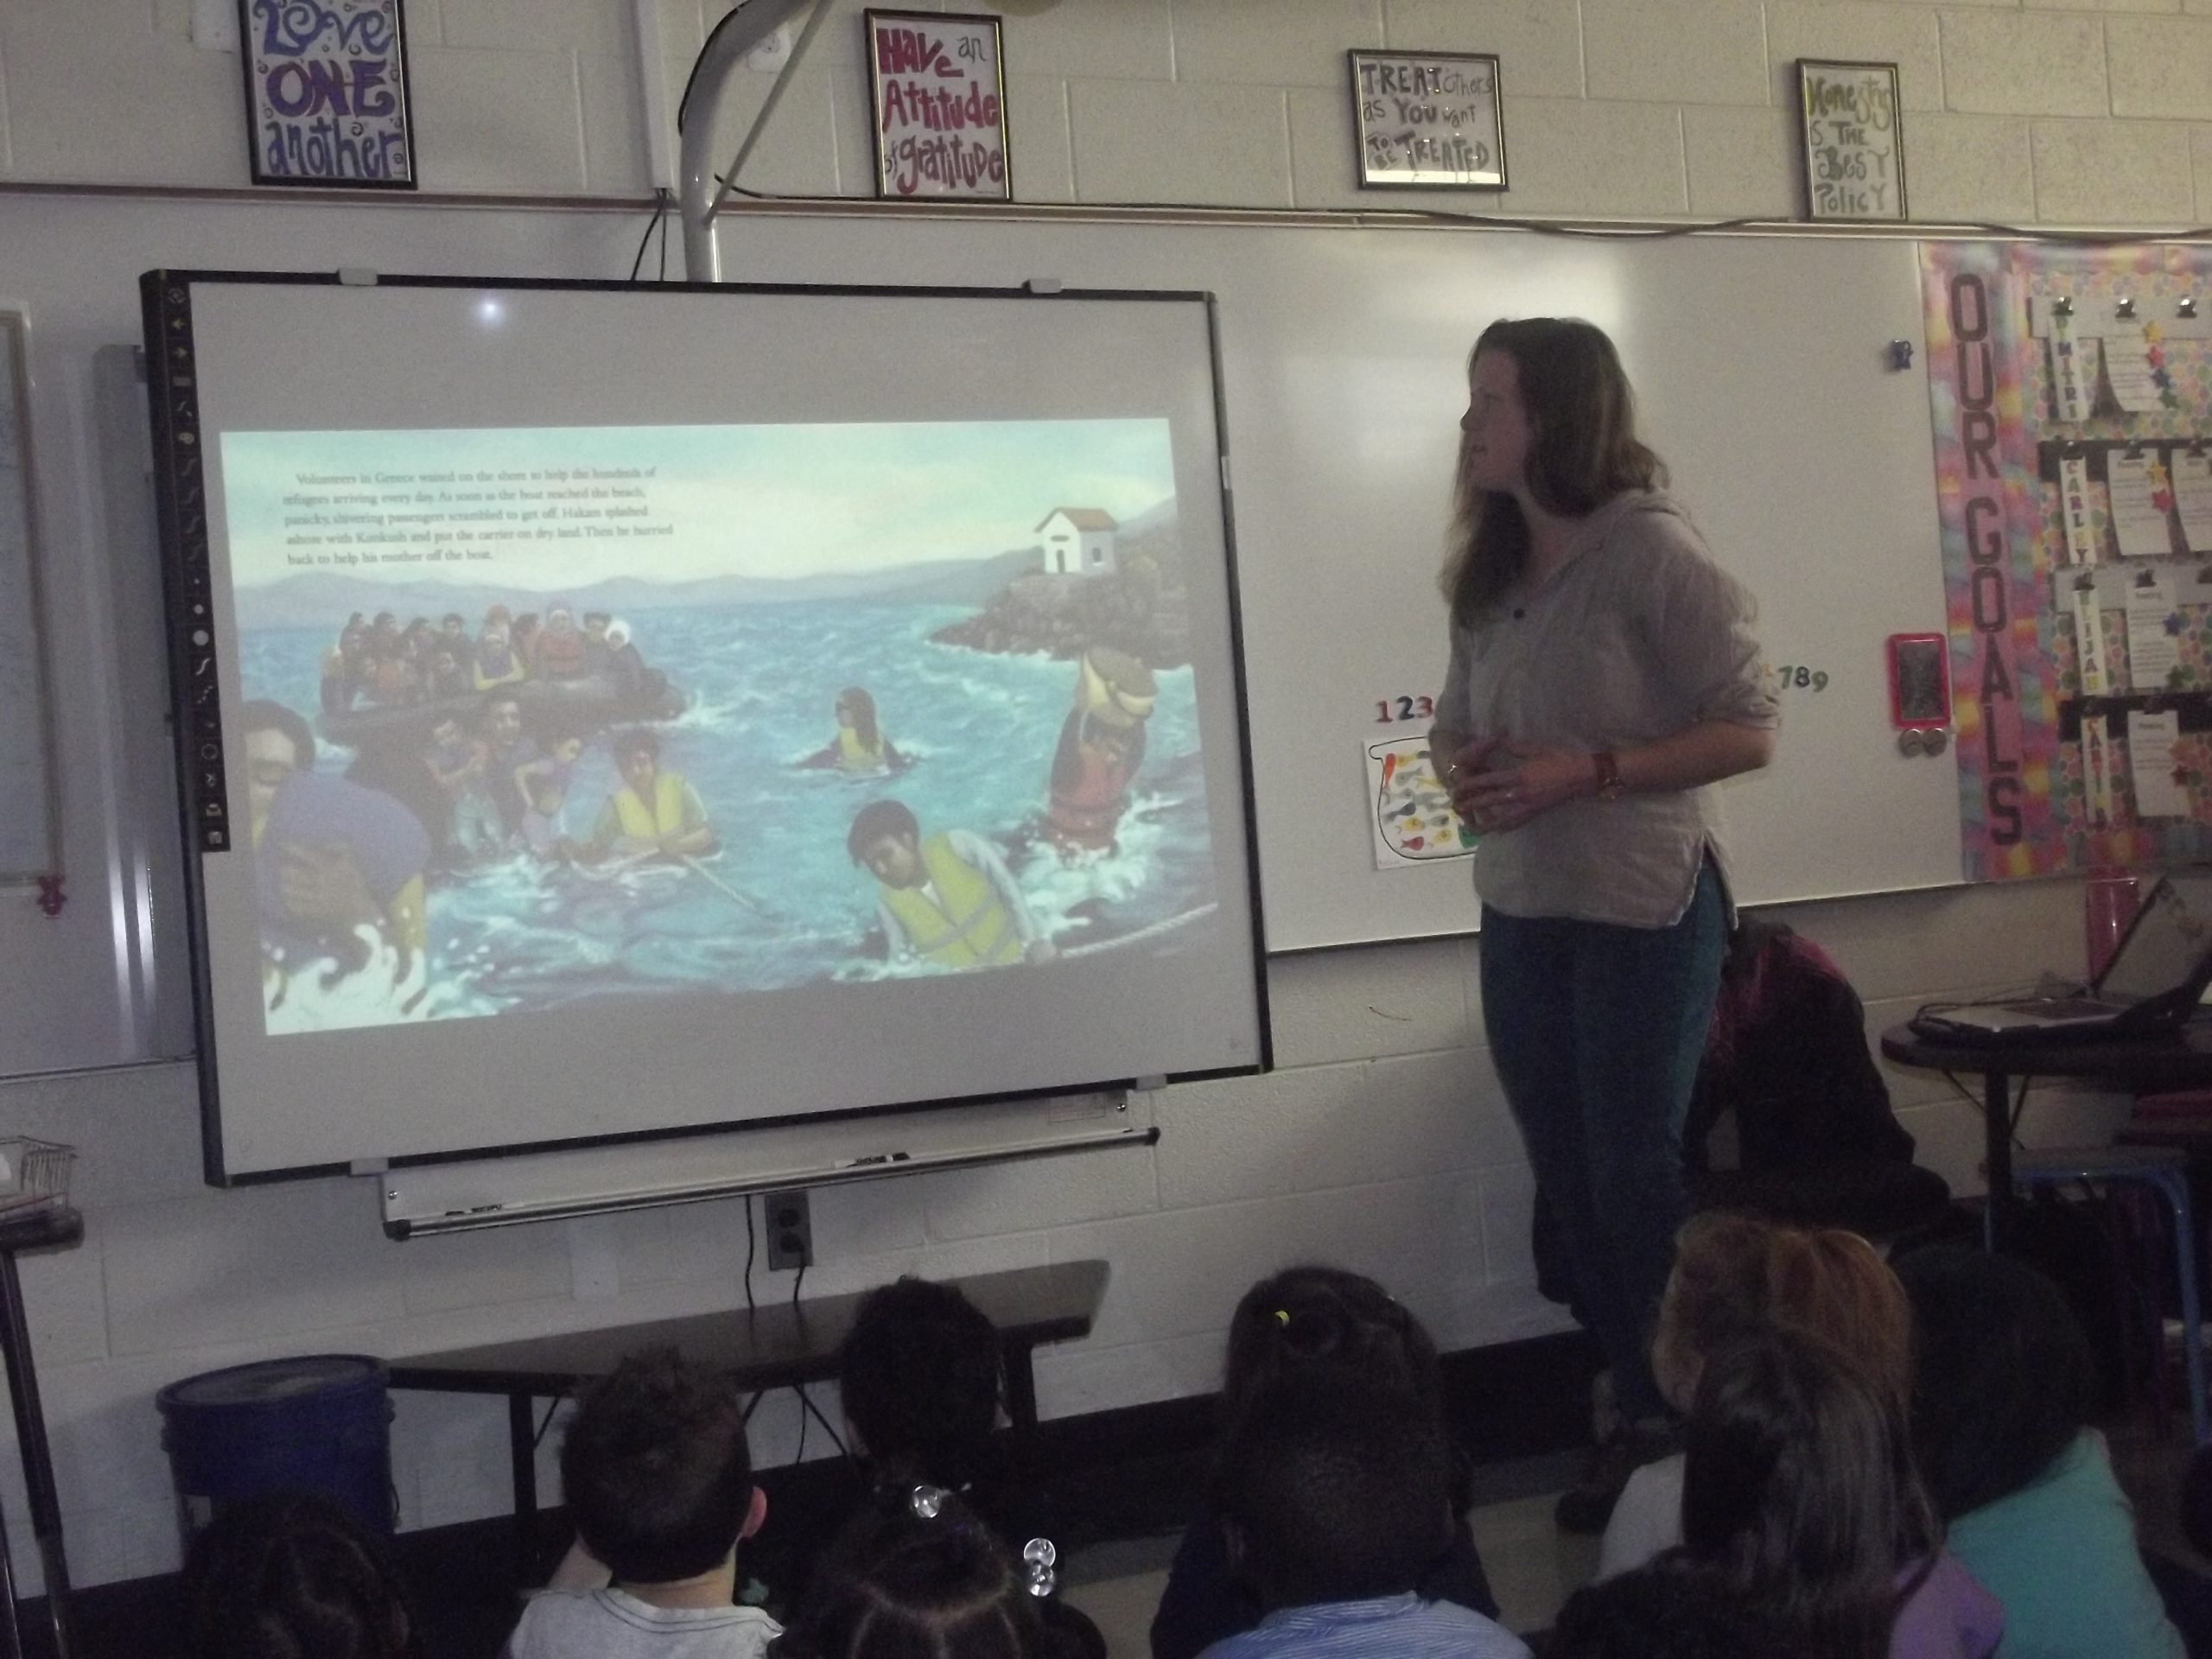 Co-Author and Character Amy Shrodes describes one of the pages on a screen in an elementary school classroom.